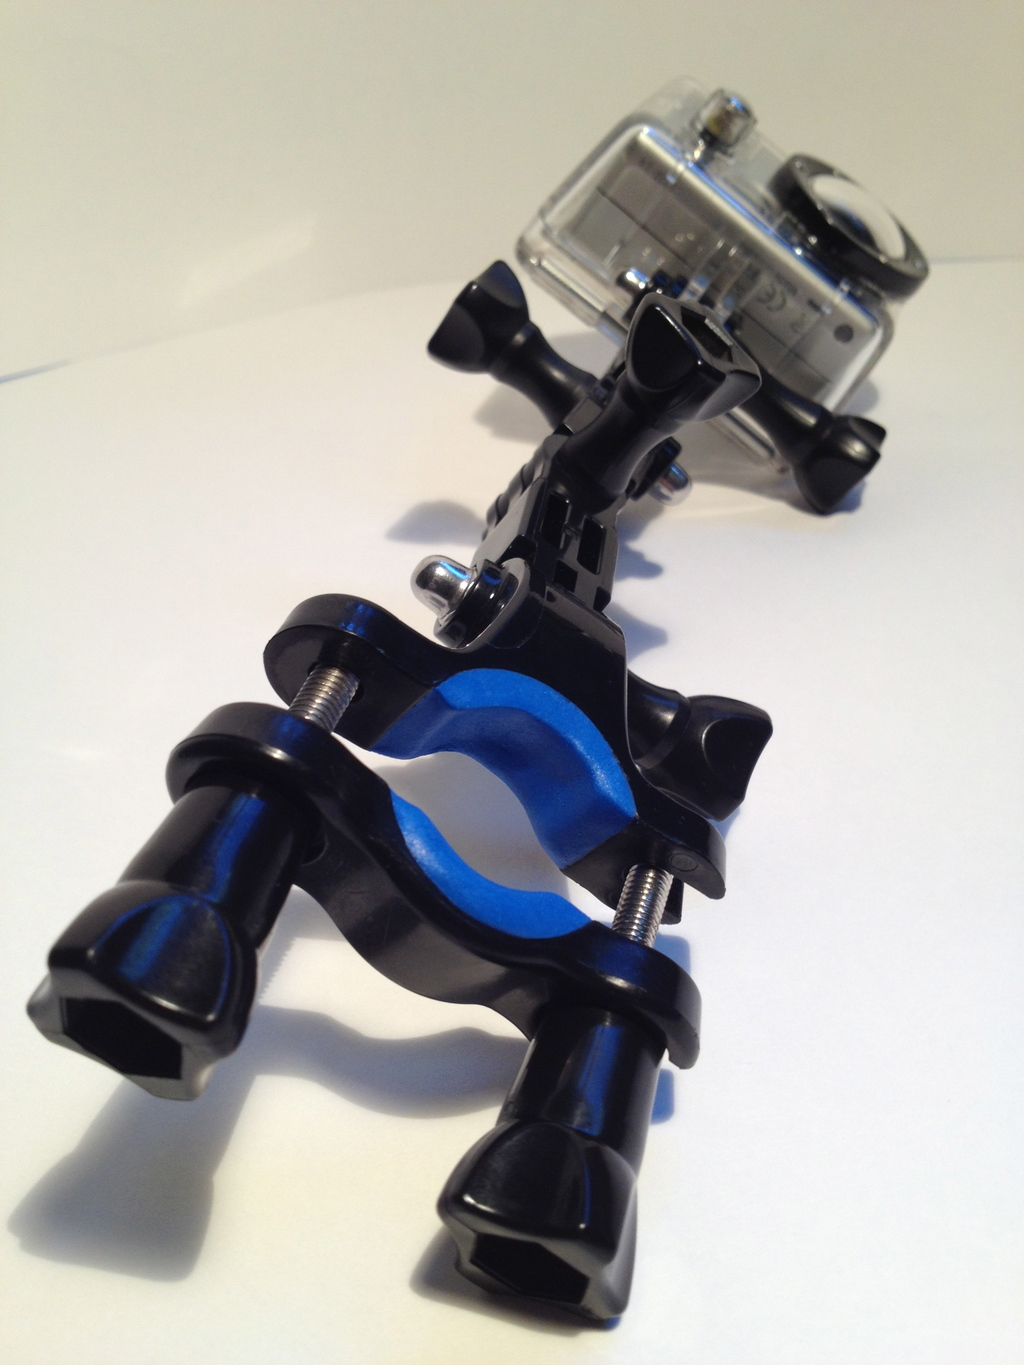 Improve a GoPro bike mount